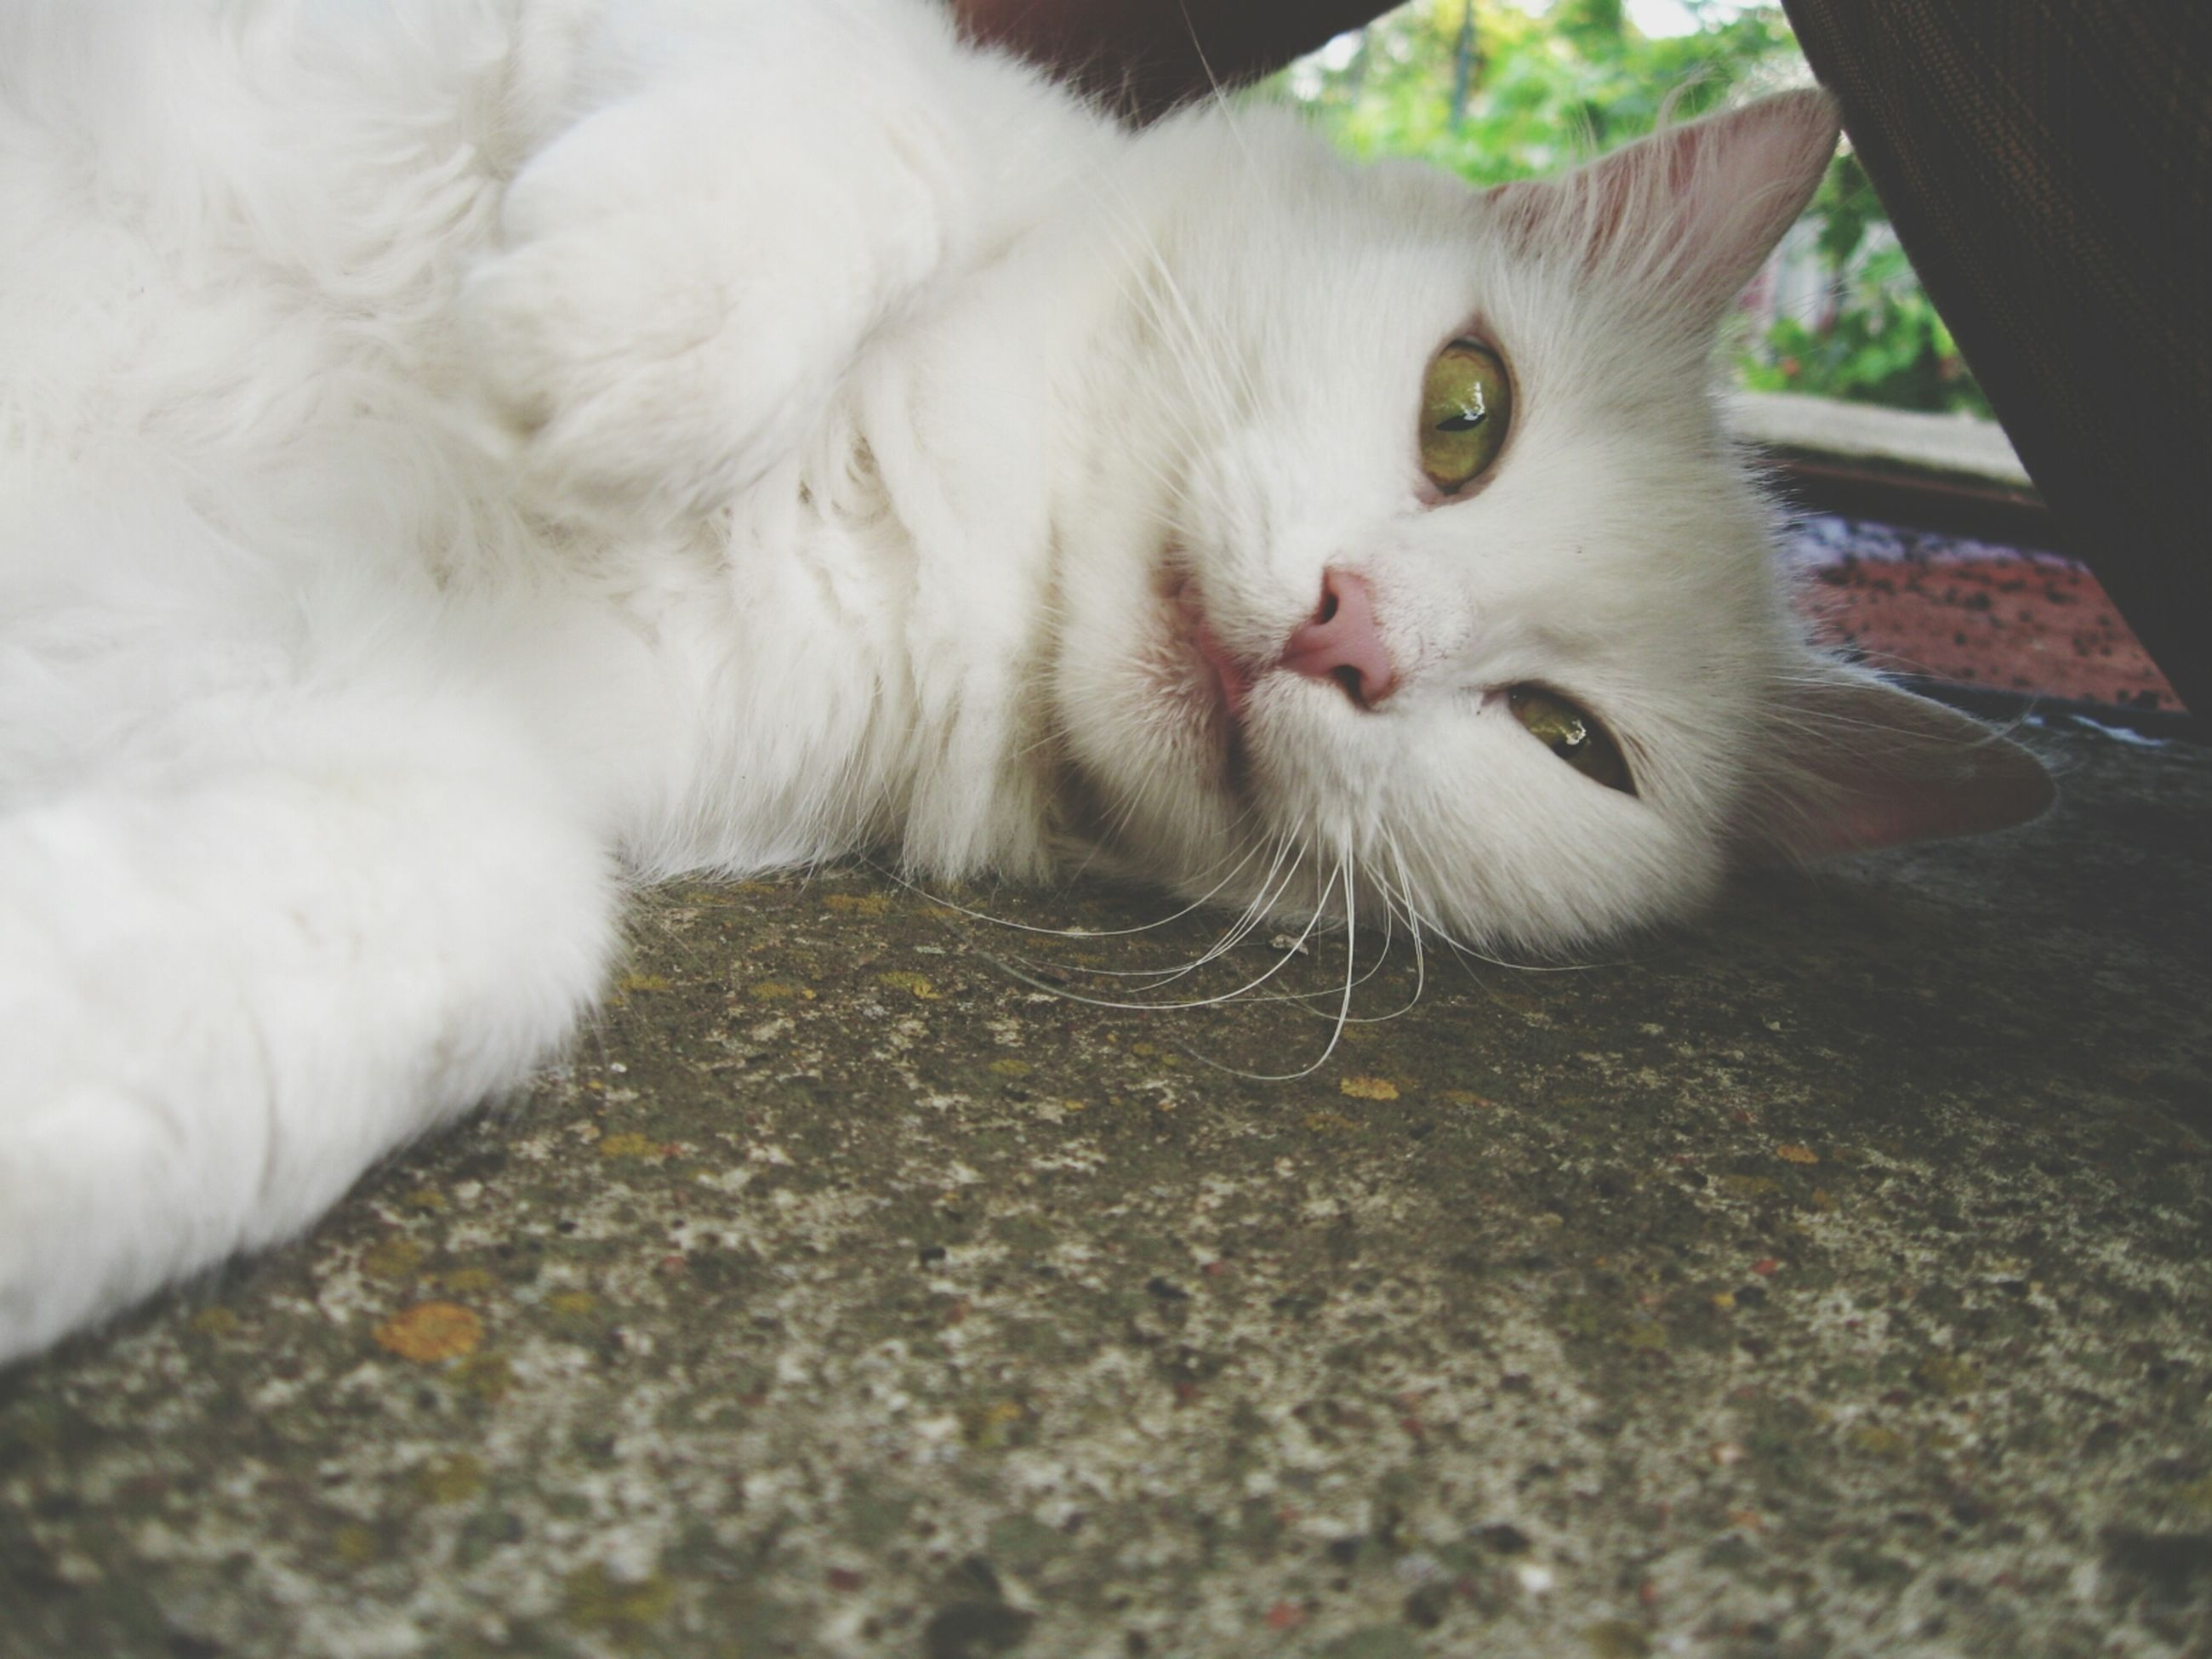 domestic cat, cat, domestic animals, feline, animal themes, pets, one animal, mammal, whisker, relaxation, close-up, lying down, looking at camera, indoors, portrait, white color, resting, selective focus, animal head, relaxing